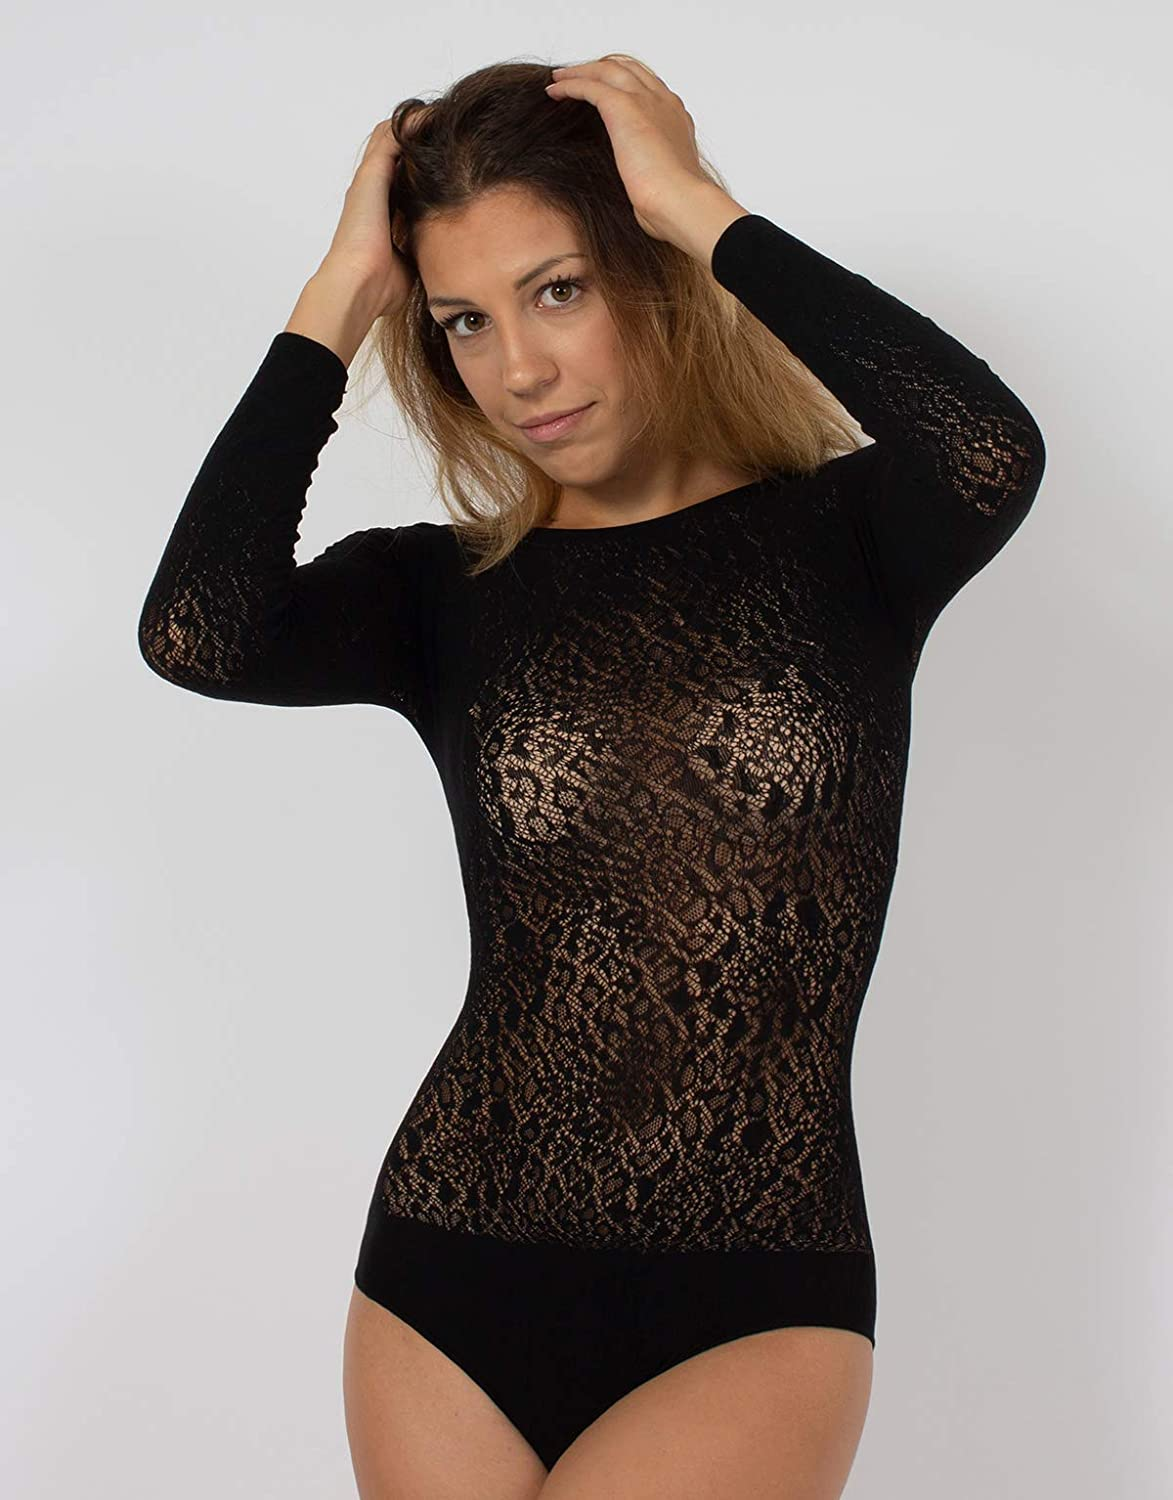 XS CALZITALY Spitzen Body Langarm mit Leopard Animal Muster S//M Schwarz Made in Italy